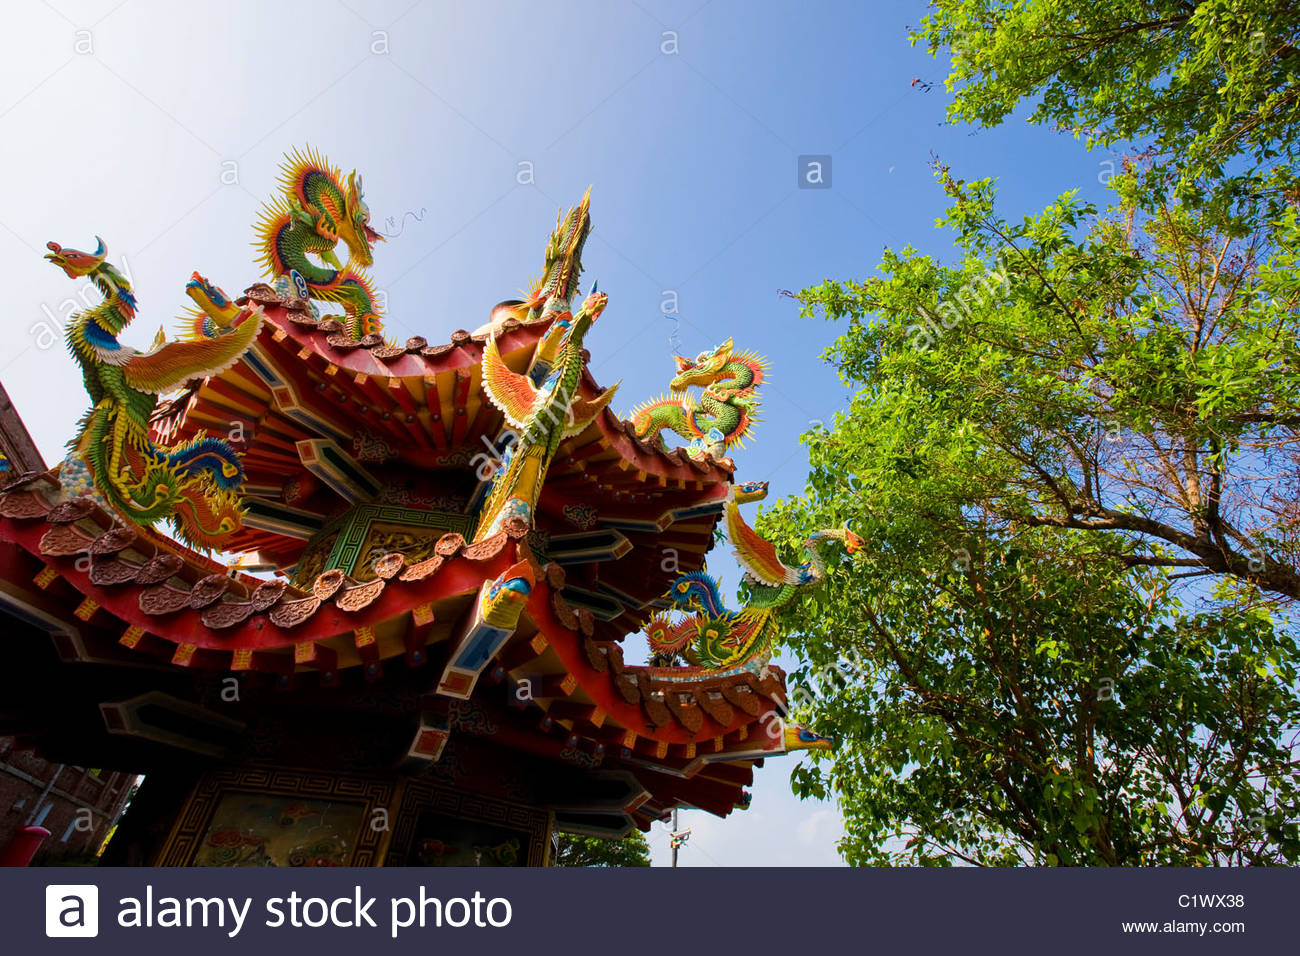 Kaohsiung, Eighteen Lords Temple, West Sizihwan Bay, Taiwan - Stock Image